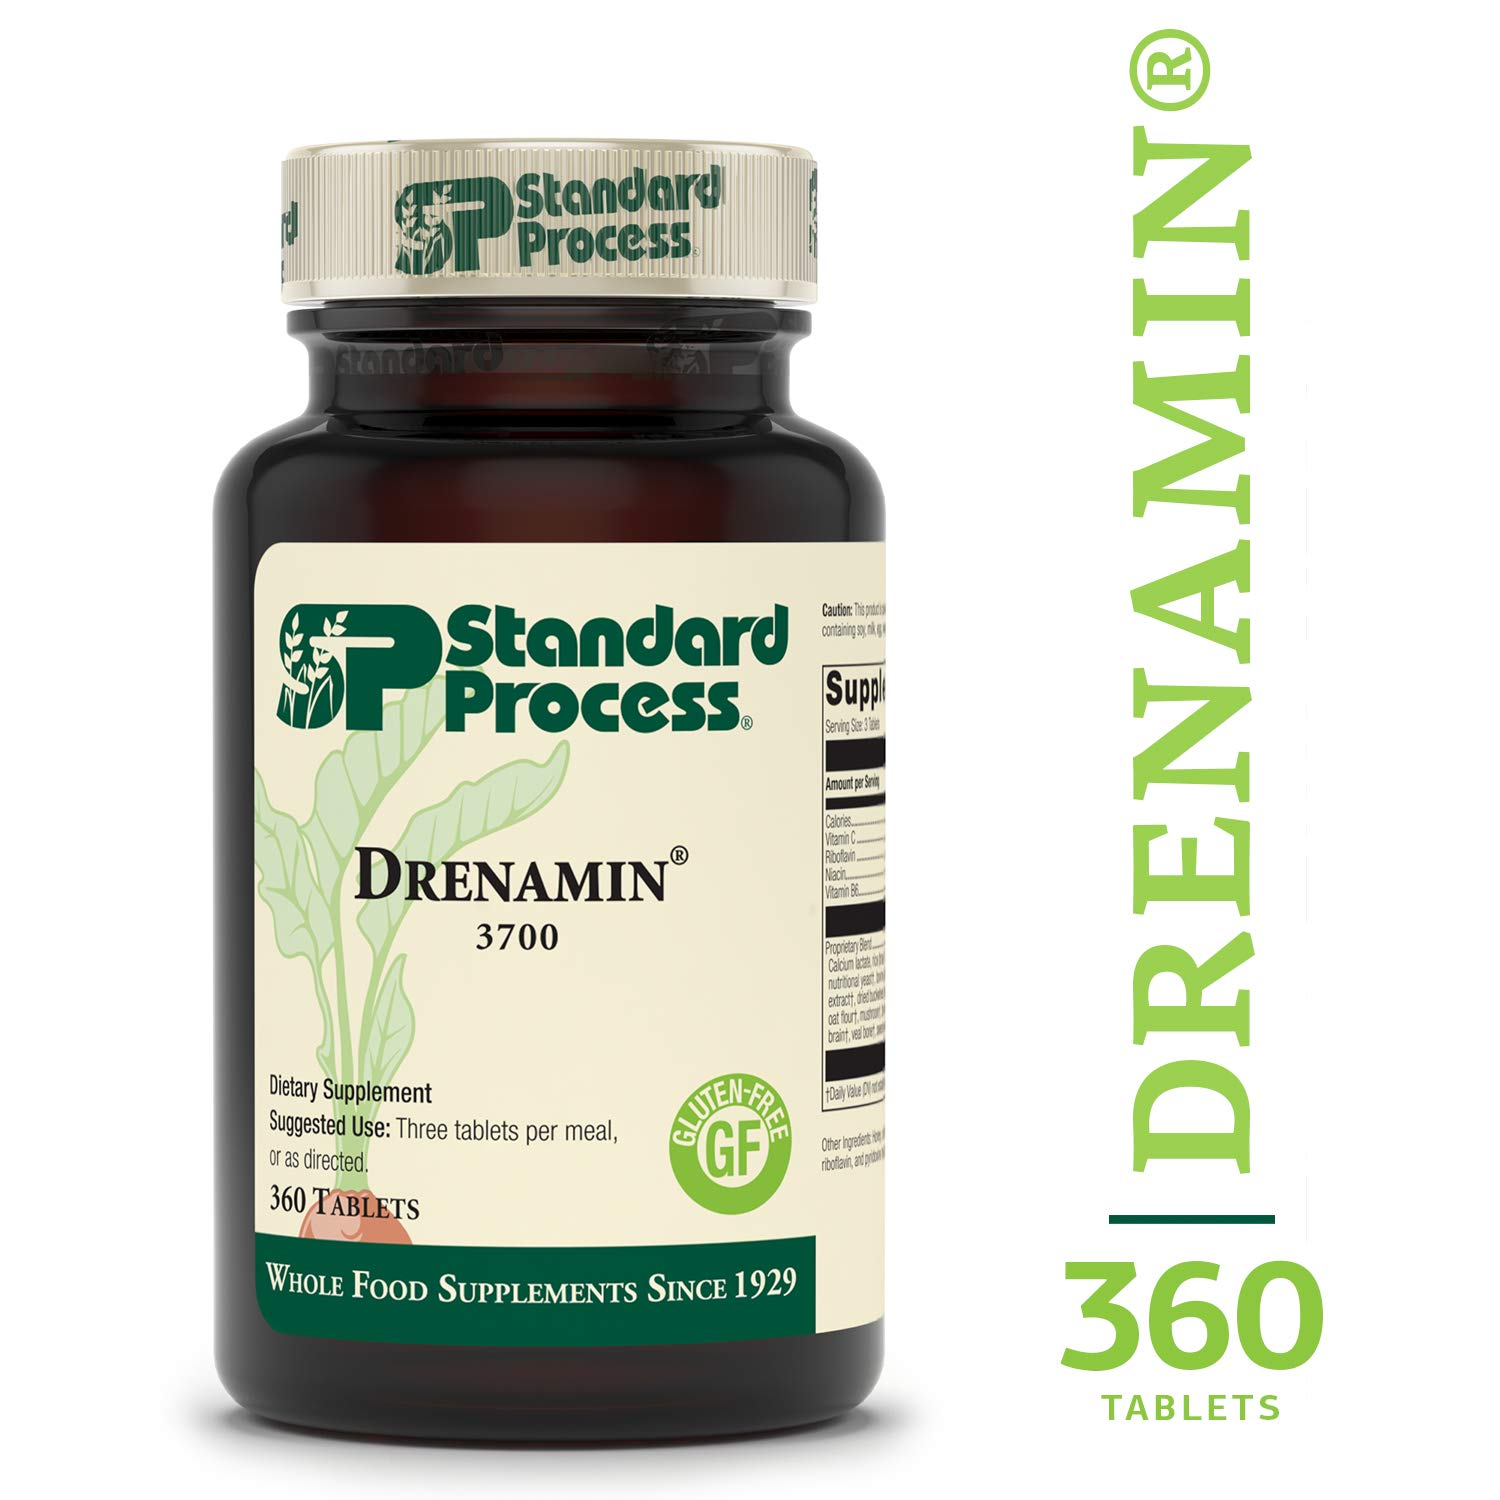 Standard Process - Drenamin - Supports Immune System Function, Energy Production, and Balanced Mood, Source of Antioxidant Vitamin C, Riboflavin, Niacin, and Vitamin B6, Gluten Free - 360 Tablets by Standard Process